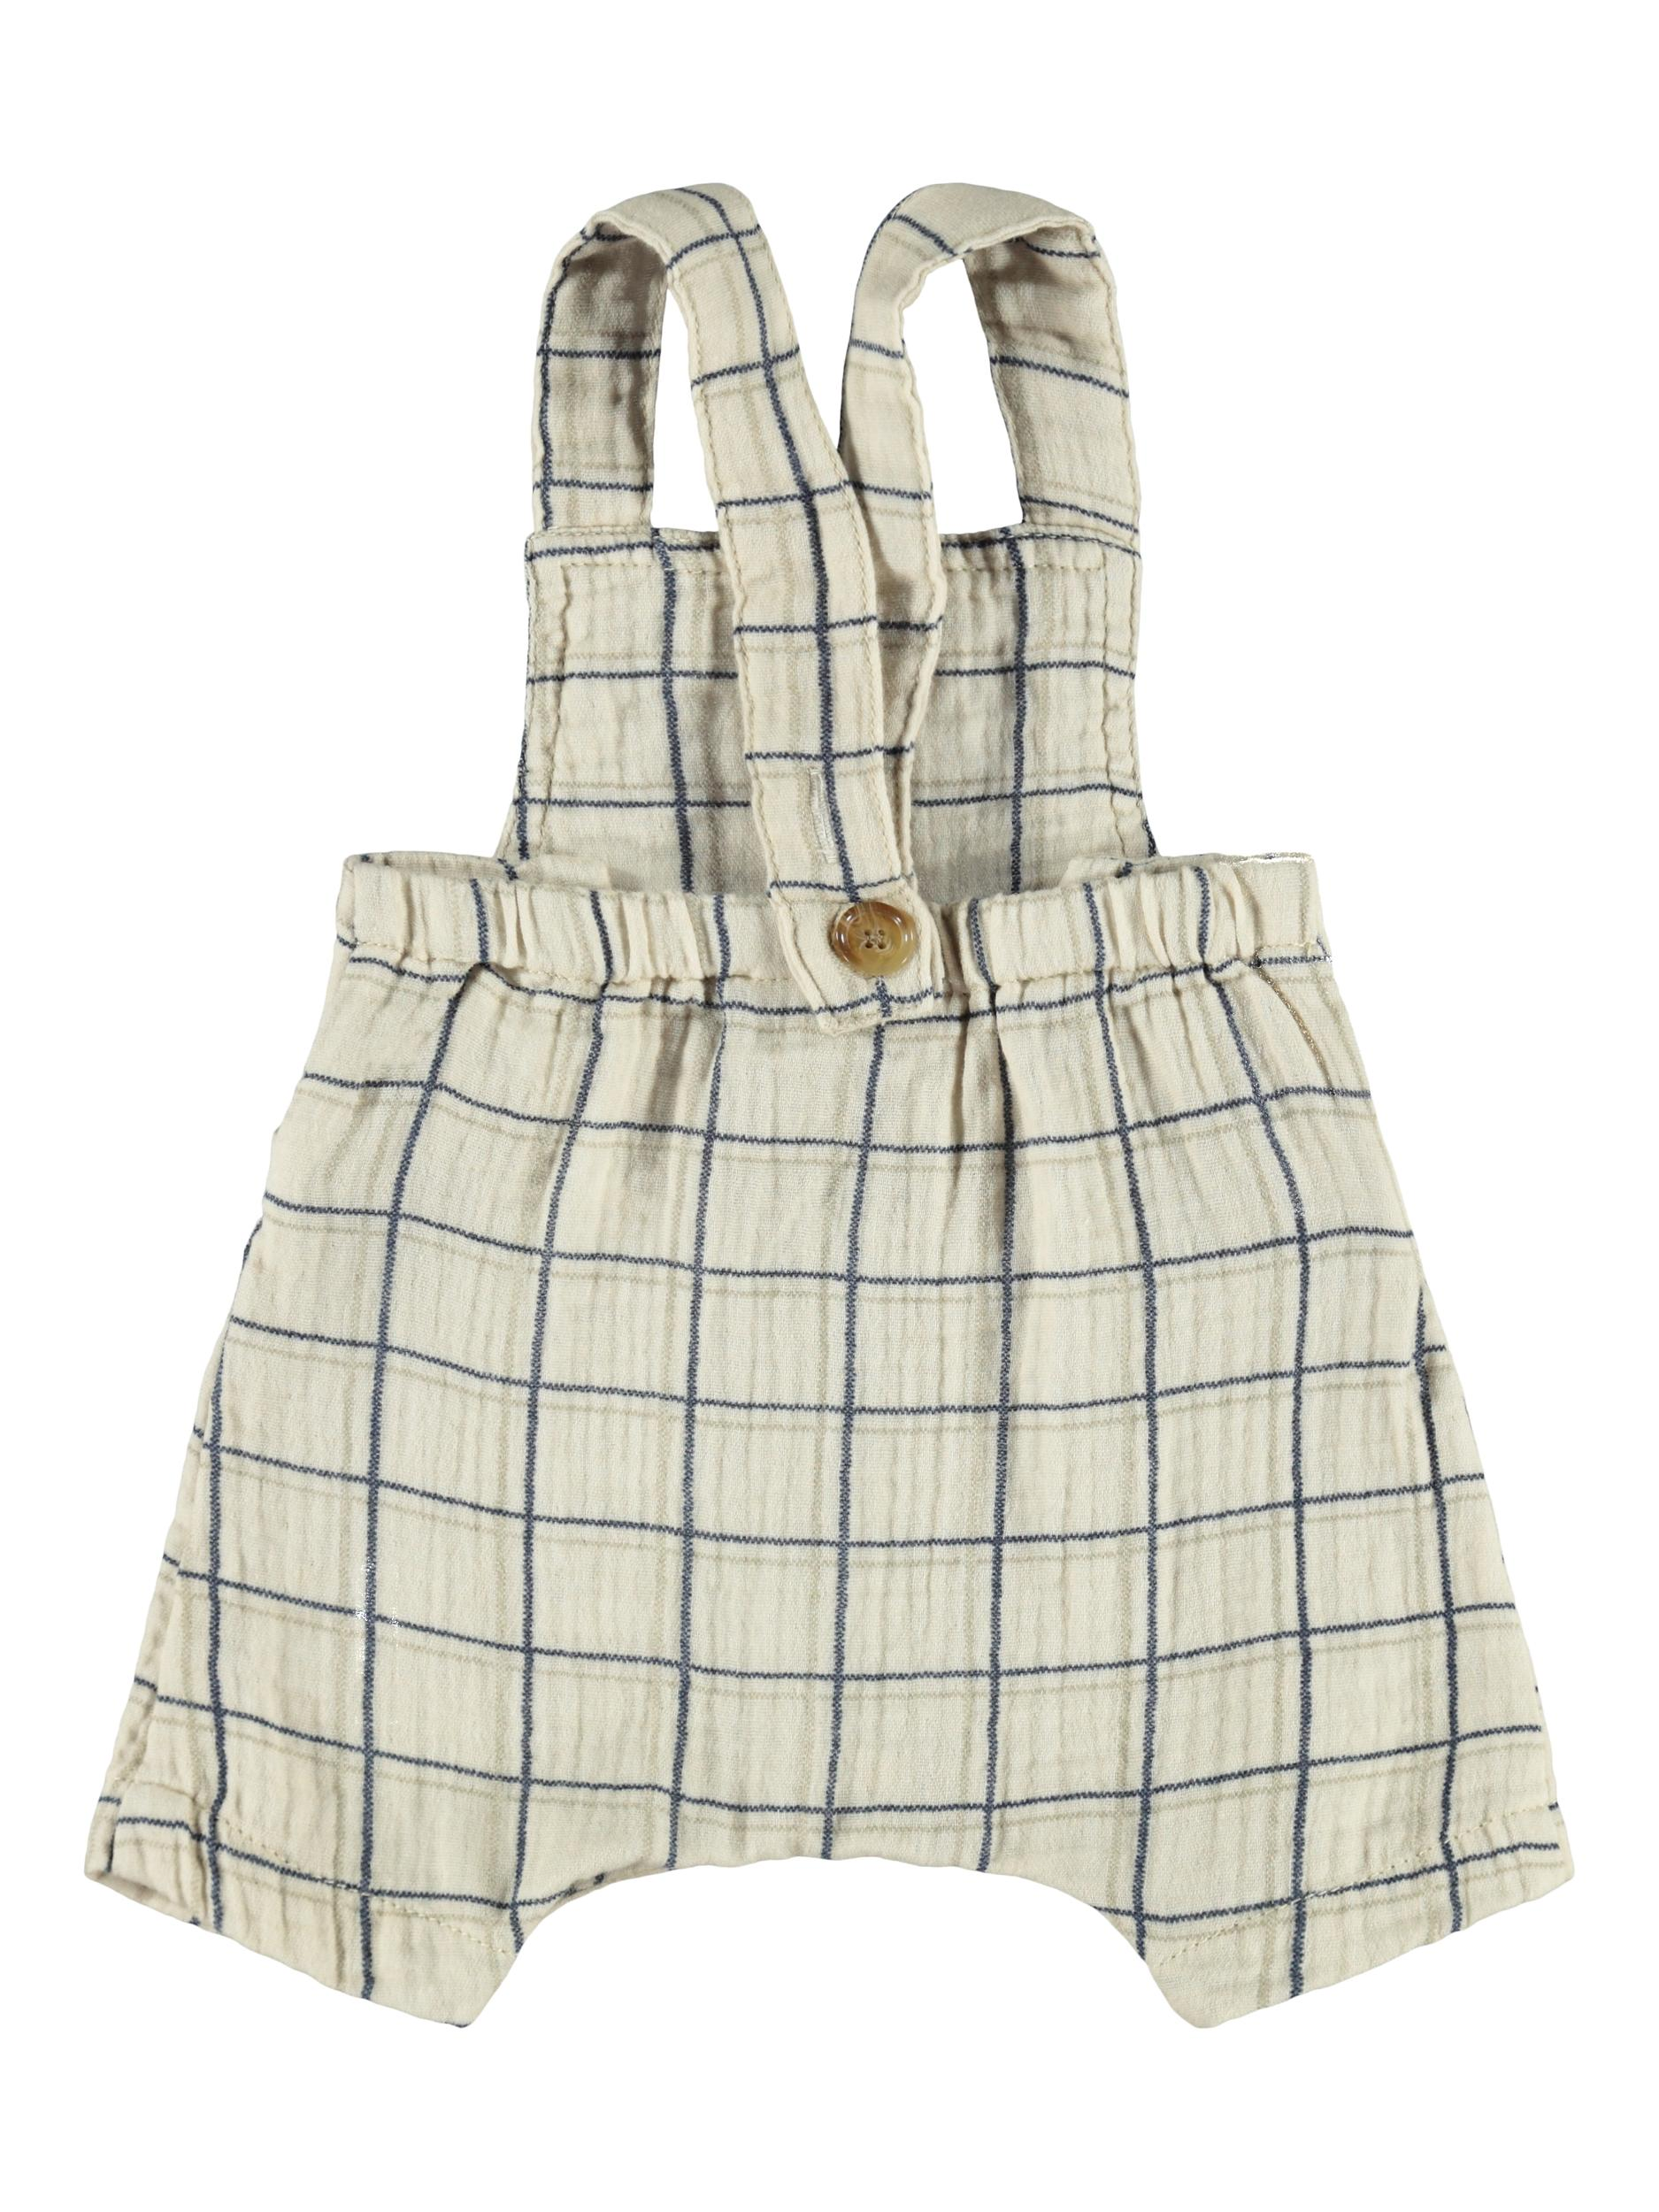 Name It Henry shorts overalls, oatmeal, 62